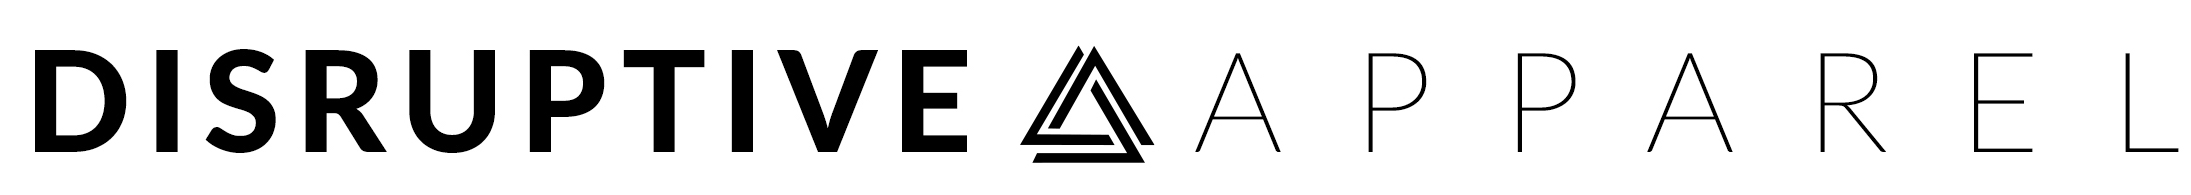 Disruptive Apparel logo